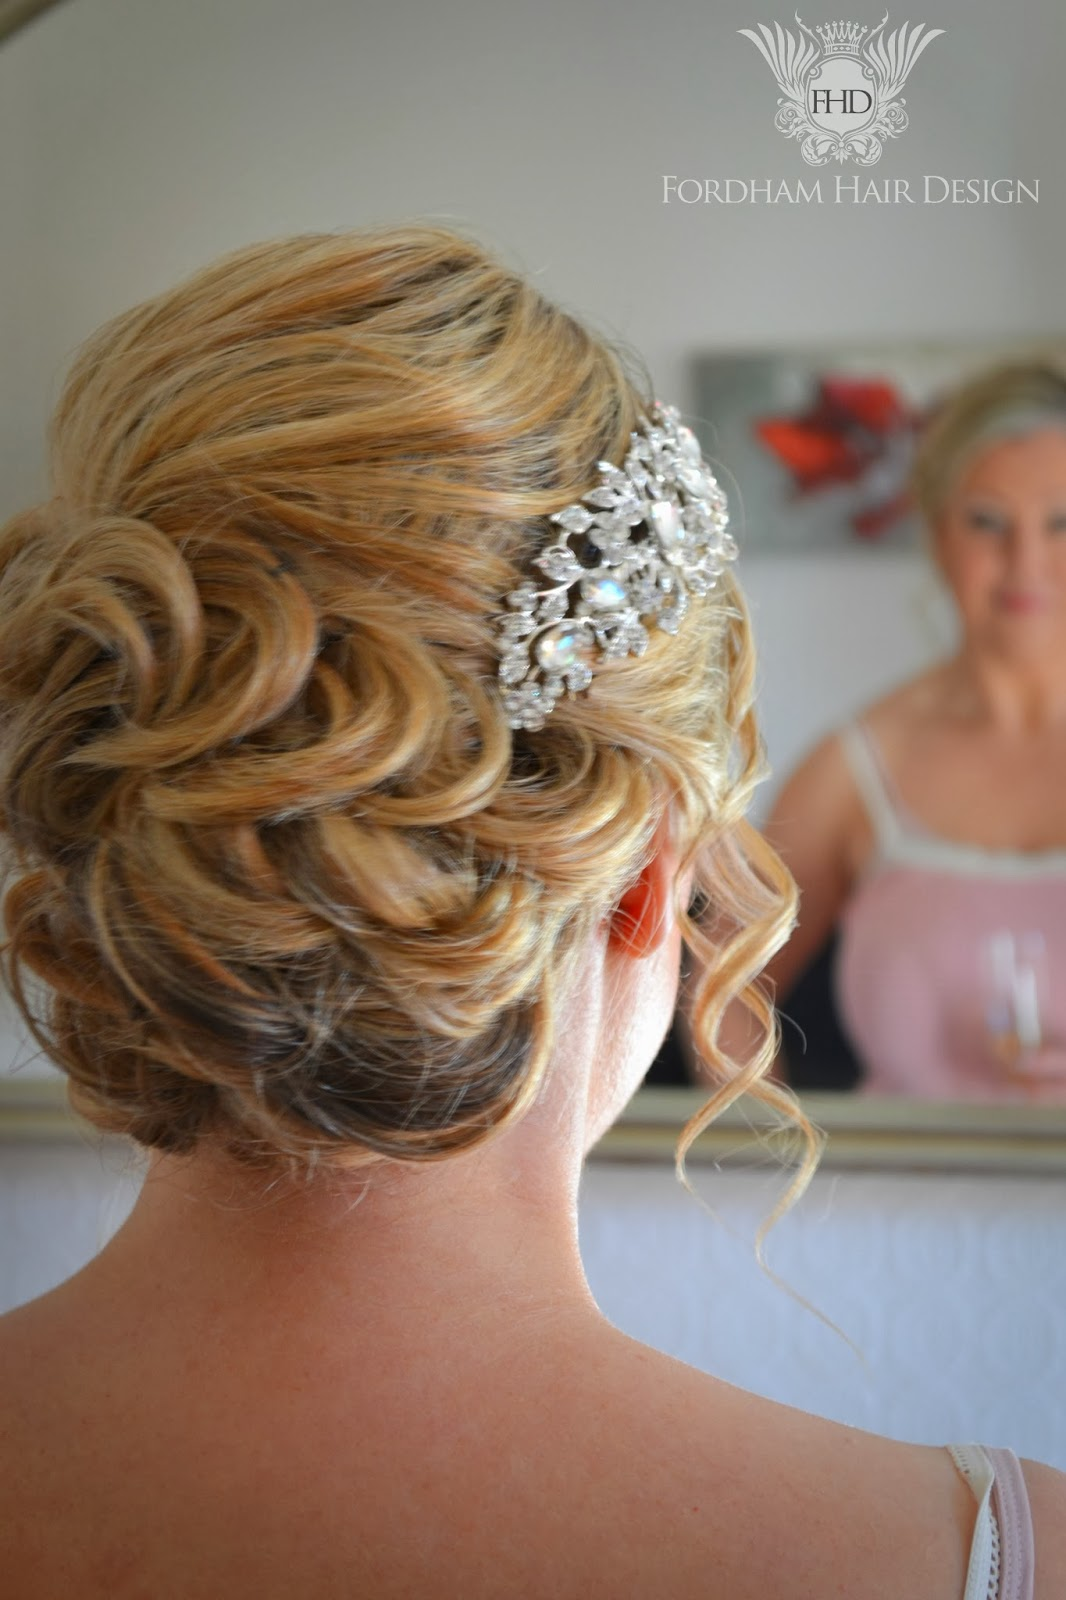 Wedding hair accessories gloucestershire - Fordham Hair Design Wedding Bridal Hair Specialist Wedding Hair Styling At The Kingscote Barn